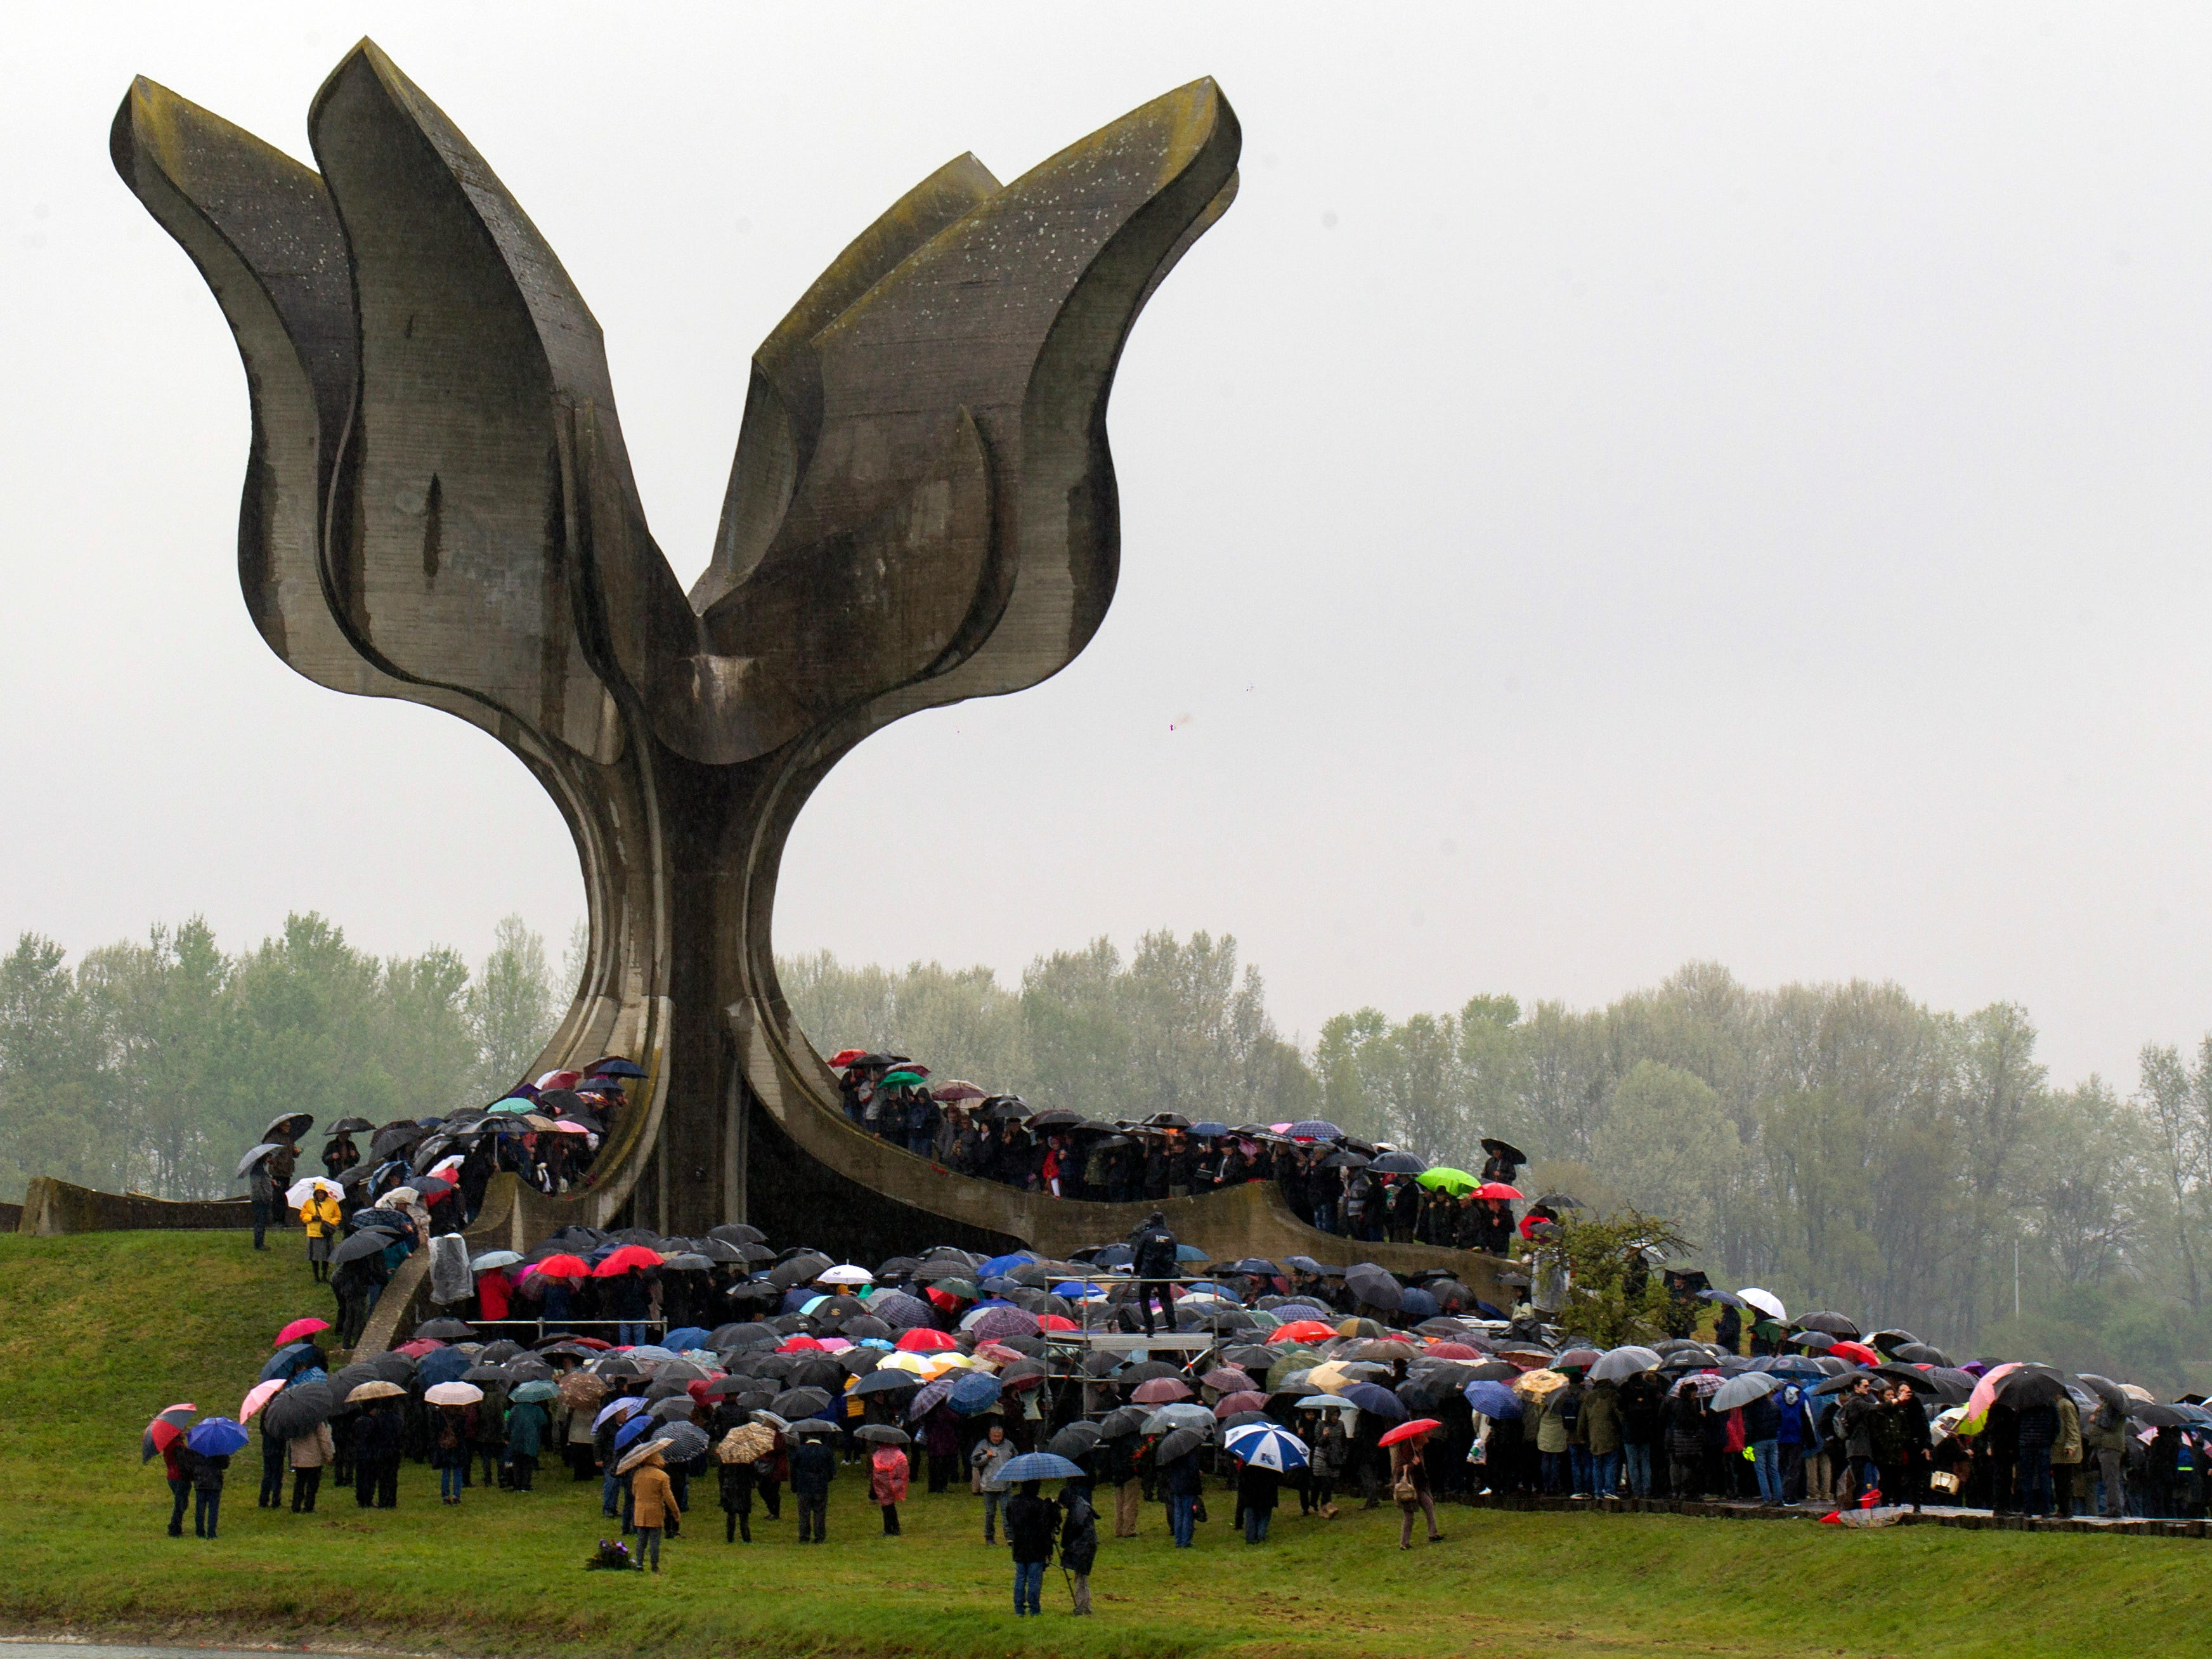 Hundreds gather at the memorial center to pay their respects for tens of thousands of people killed in death camps run by Croatia's pro-Nazi puppet state in WWII, in Jasenovac, Croatia, Friday, April 12, 2019.  Croatia's Jewish, Serb, anti-fascist and Roma groups have commemorated the victims of a World War II death camp by snubbing the official ceremonies for the fourth year in a row over what they say is government inaction to curb neo-Nazi sentiments in the European Union country.